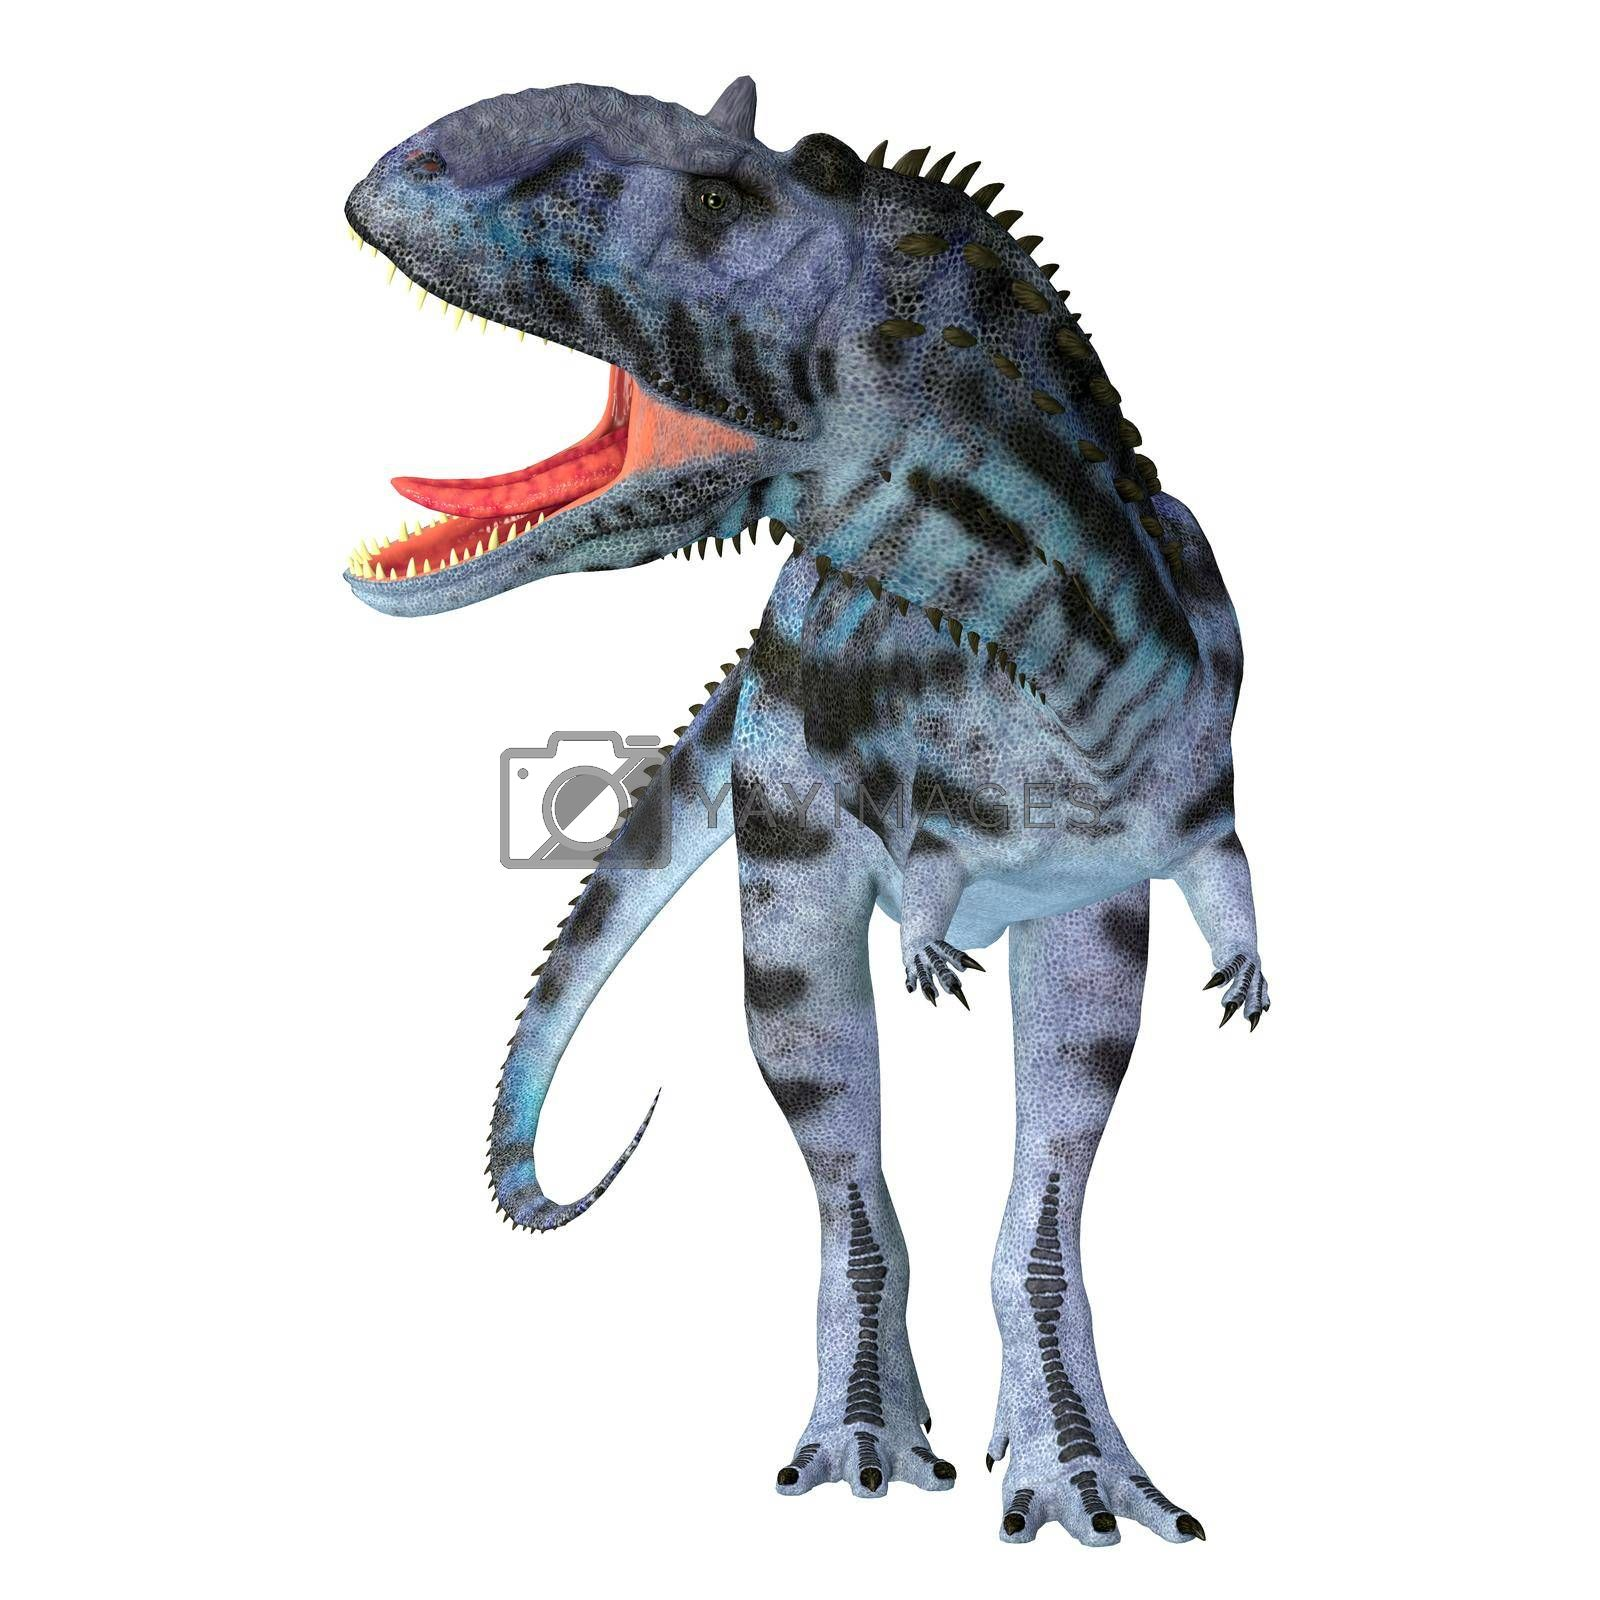 Majungasaurus was a carnivorous theropod dinosaur that lived in Madagascar during the Cretaceous Period.